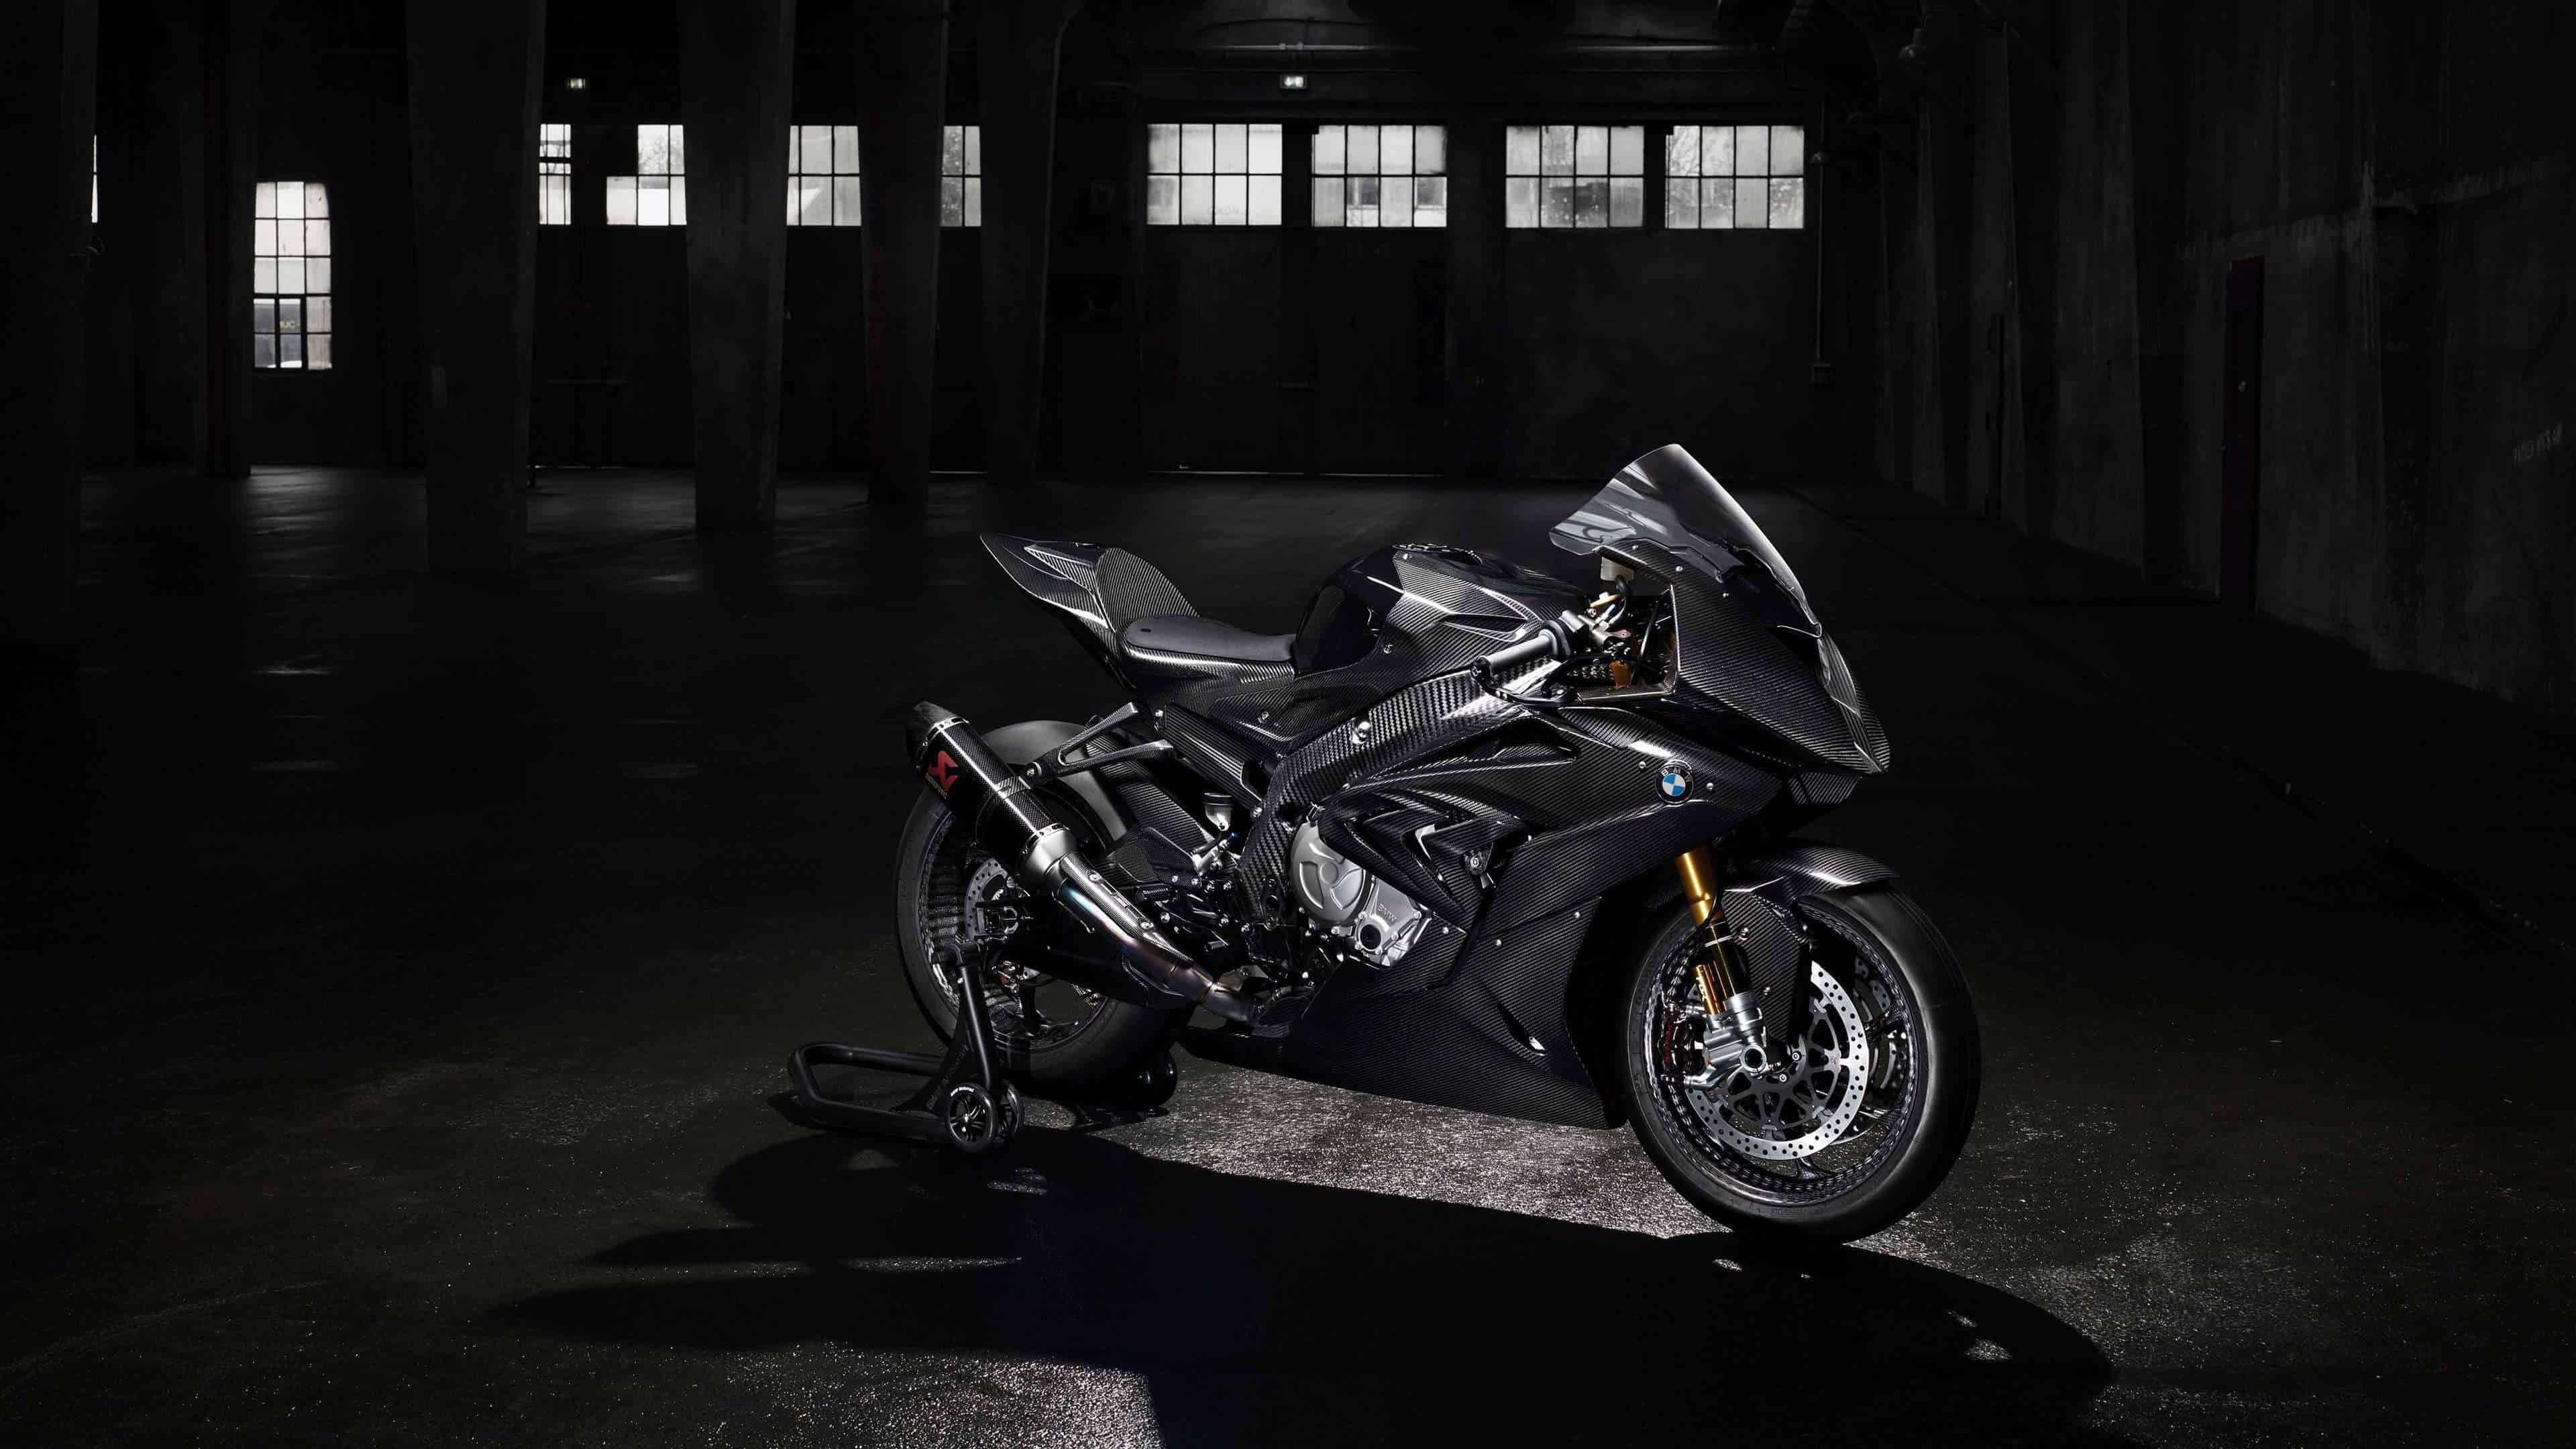 Bmw S1000rr Wallpaper 77 Images